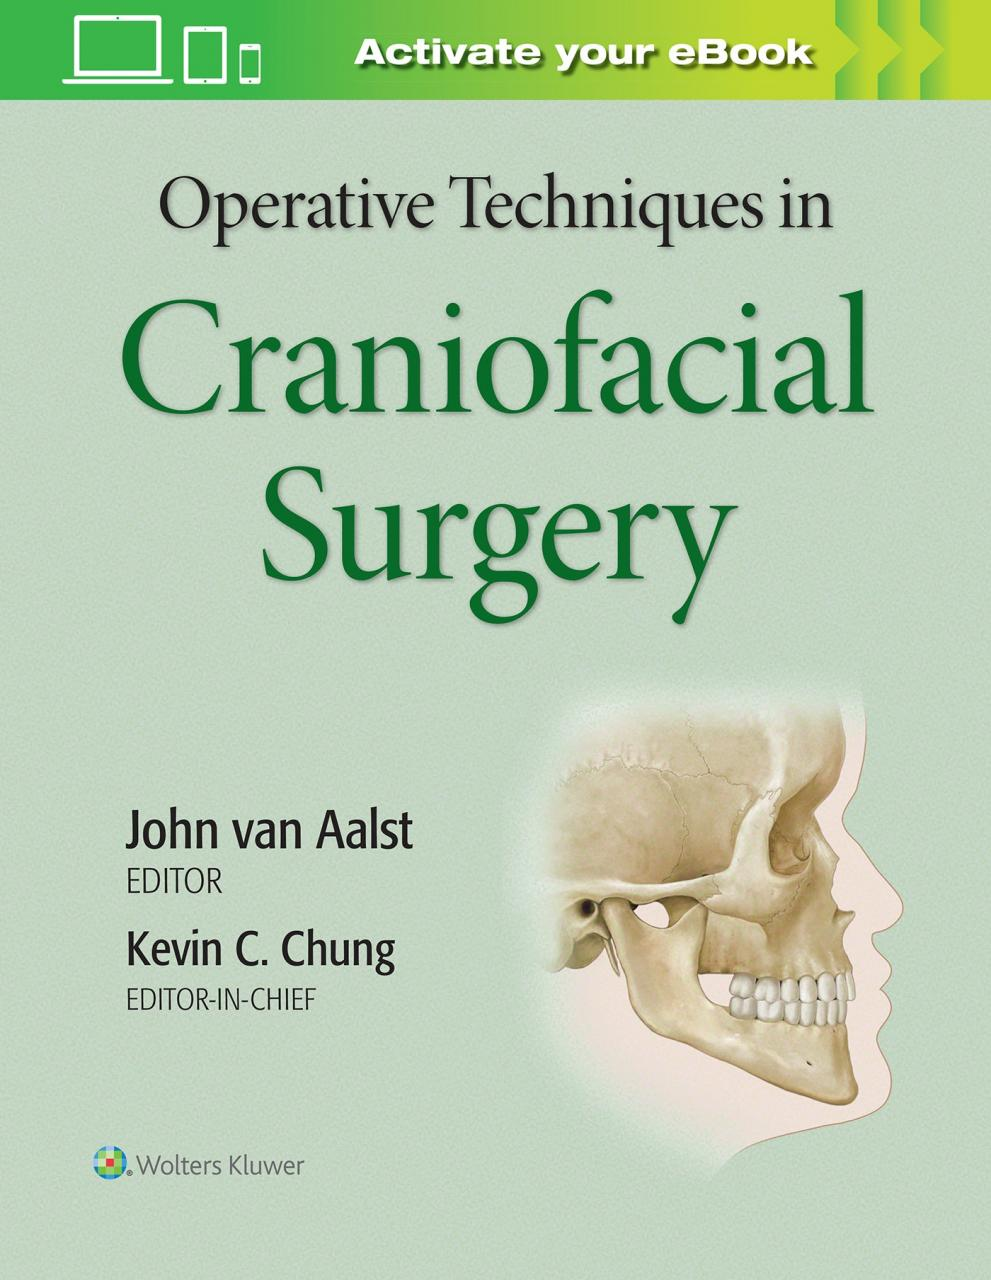 Operative Techniques in Craniofacial Surgery